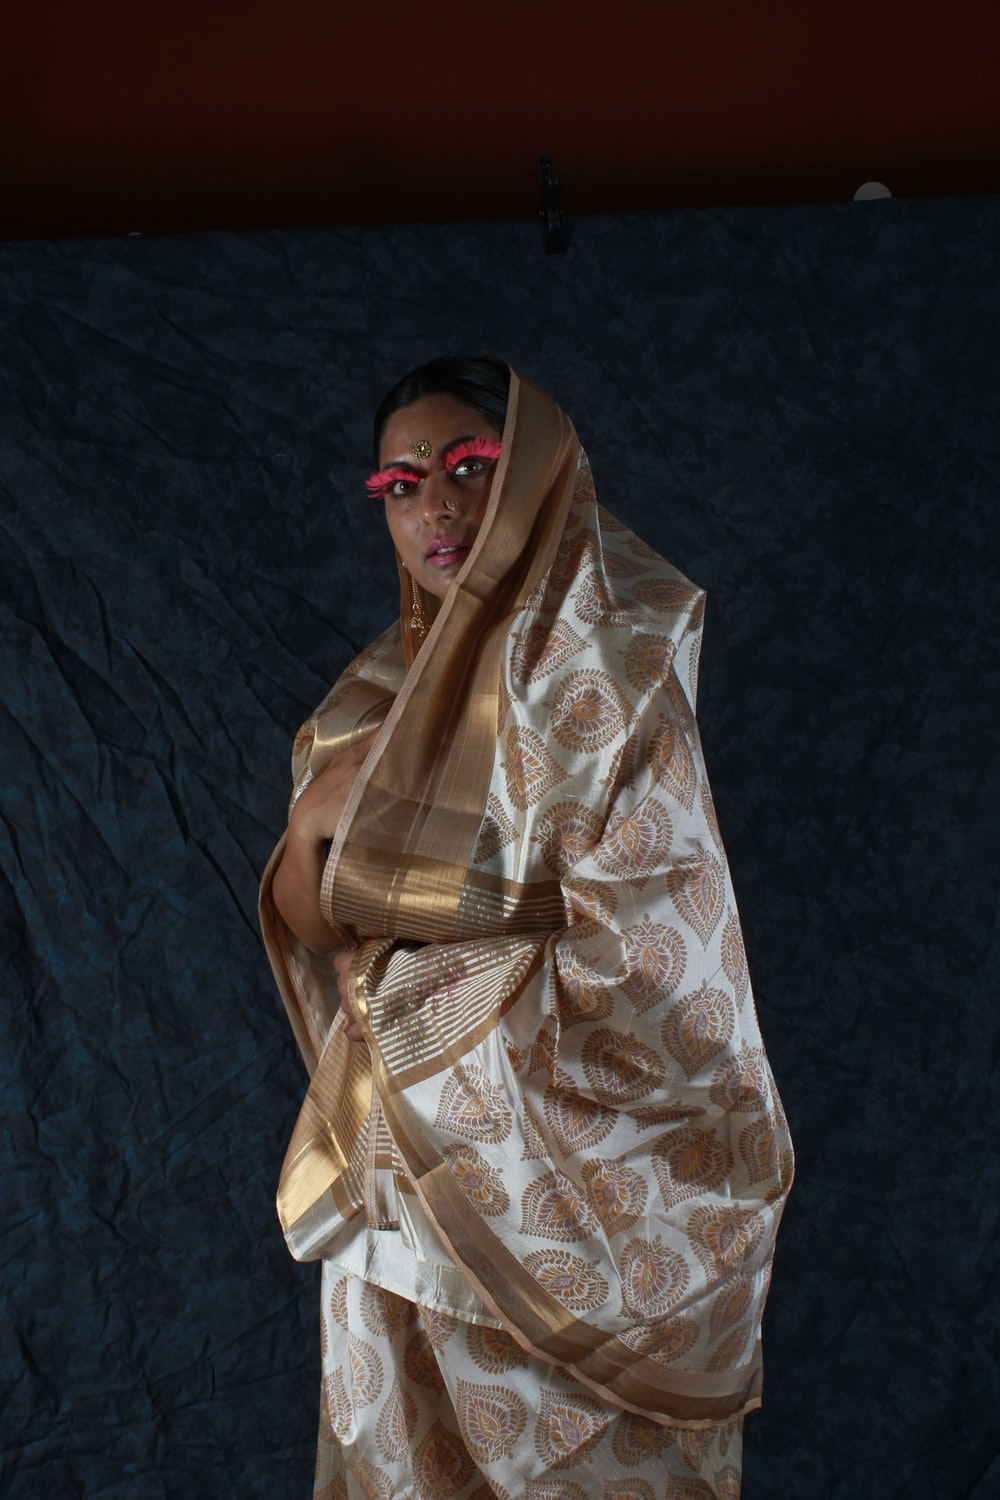 woman covered by brown and gray sari drape